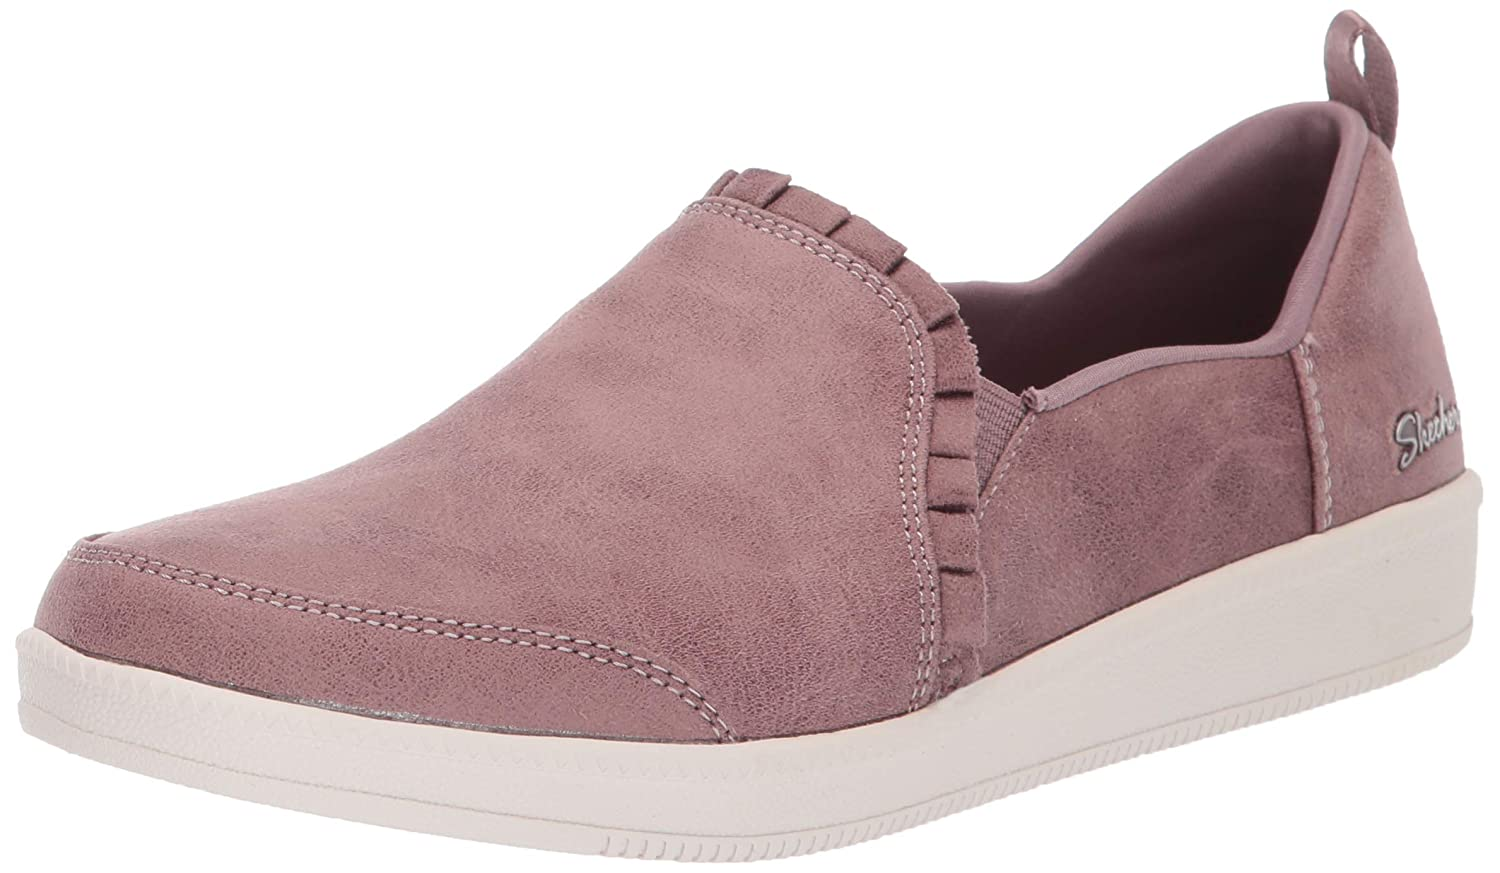 Mauve Skechers Womens Madison Ave - City Soul Fashion Sneakers